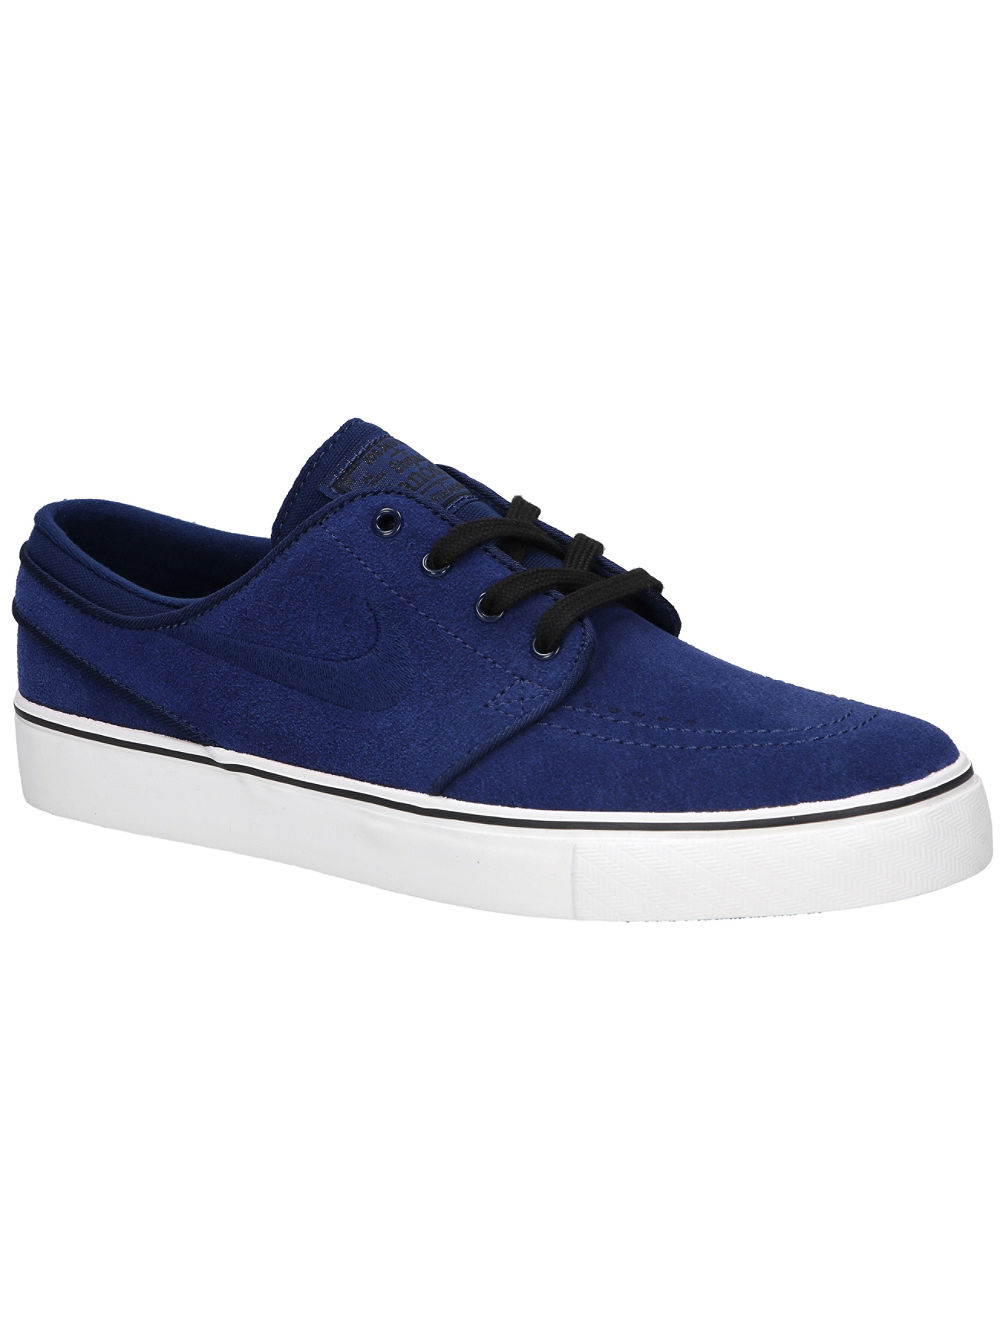 Stefan Janoski Skate Shoes